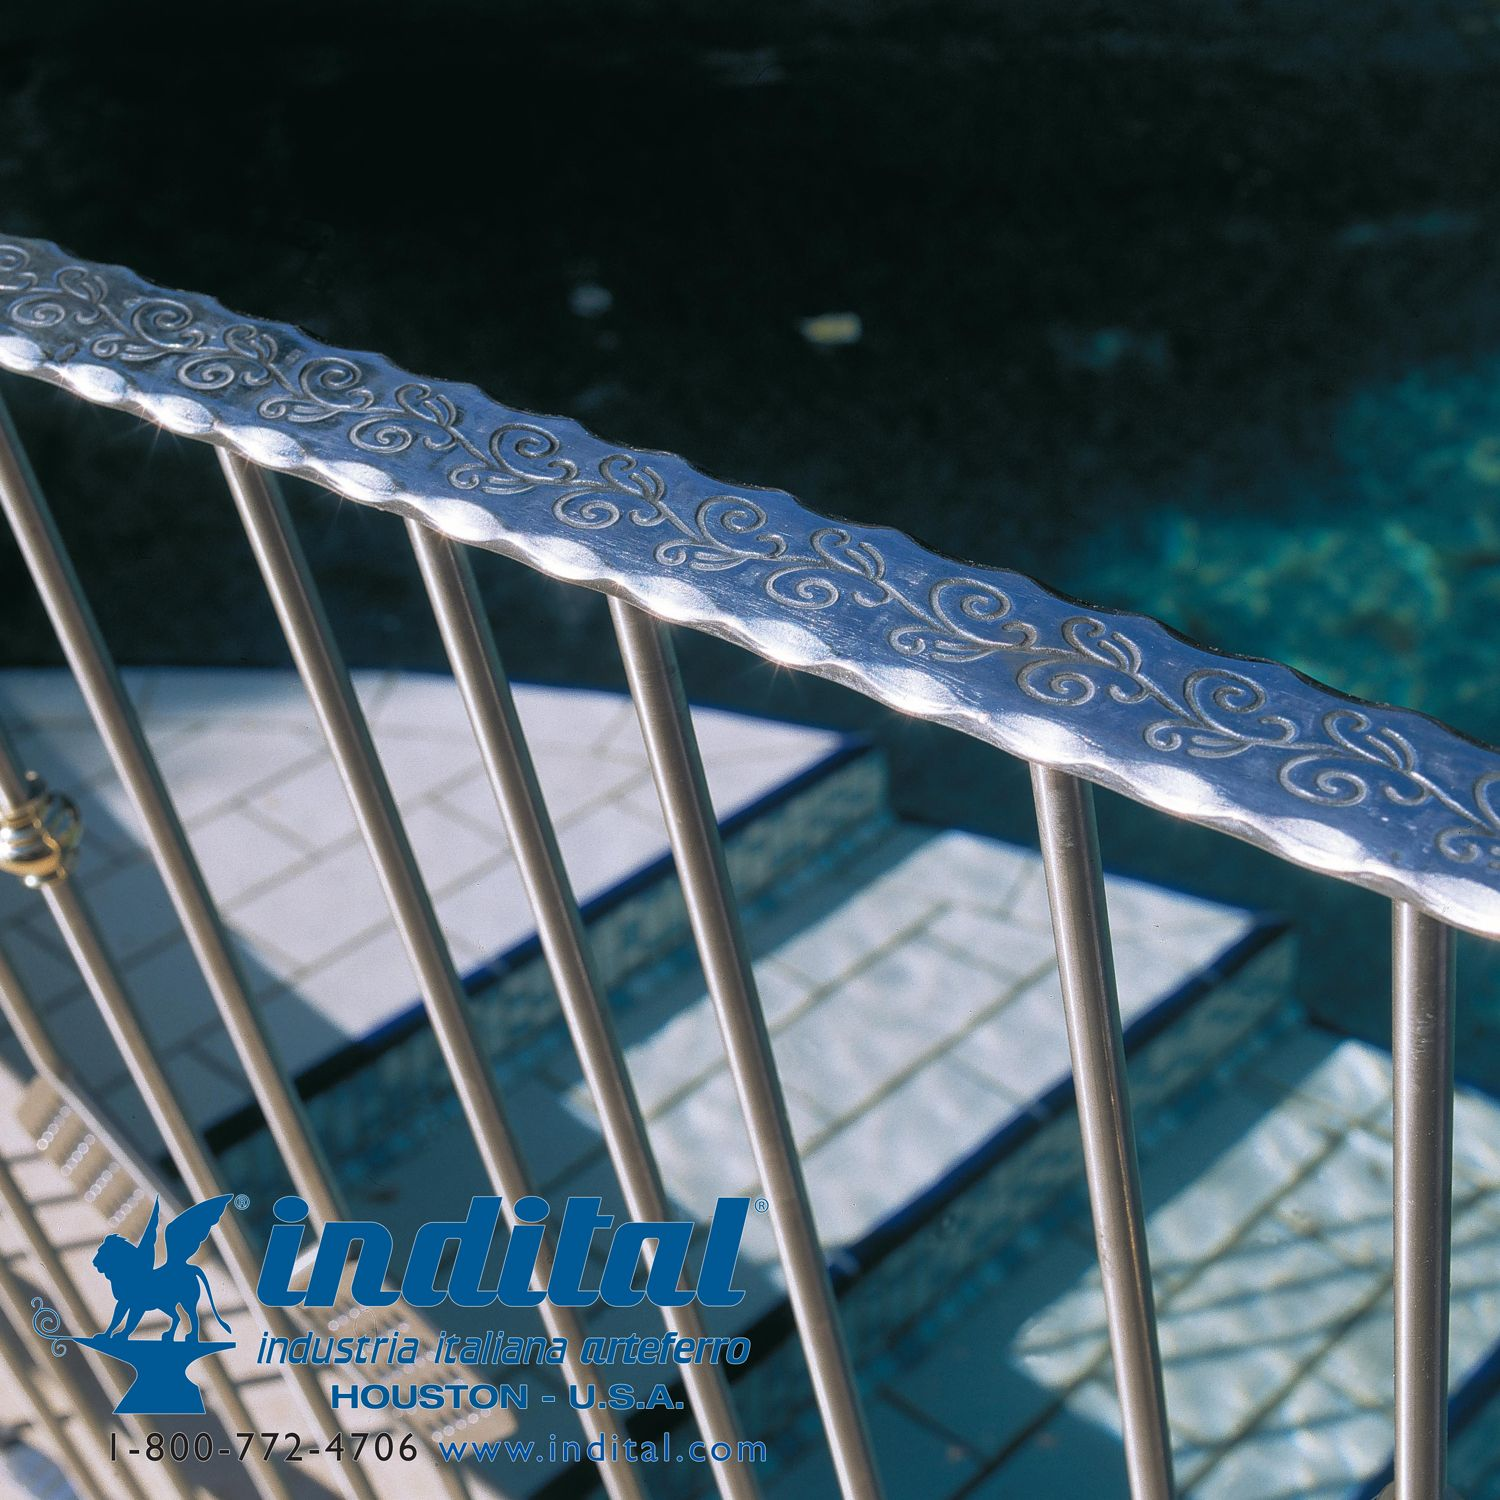 We offer a full range of aluminum rails, balusters, and